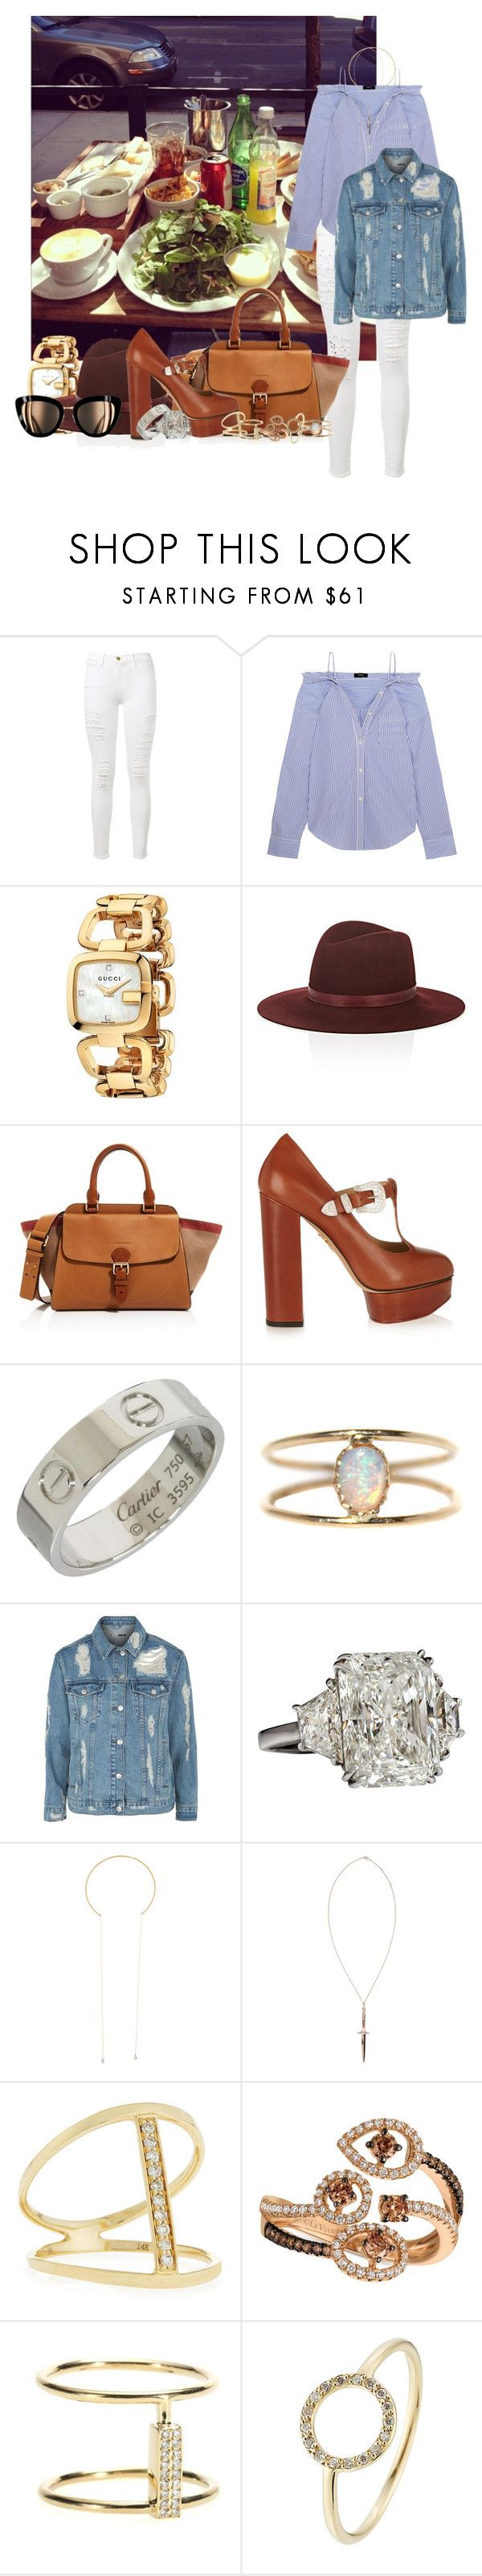 """Bez naslova #6395"" by unorthodox-1 ❤ liked on Polyvore featuring Frame, Theory, Gucci, Janessa Leone, Burberry, Charlotte Olympia, Cartier, LUMO, Topshop and Pamela Love"